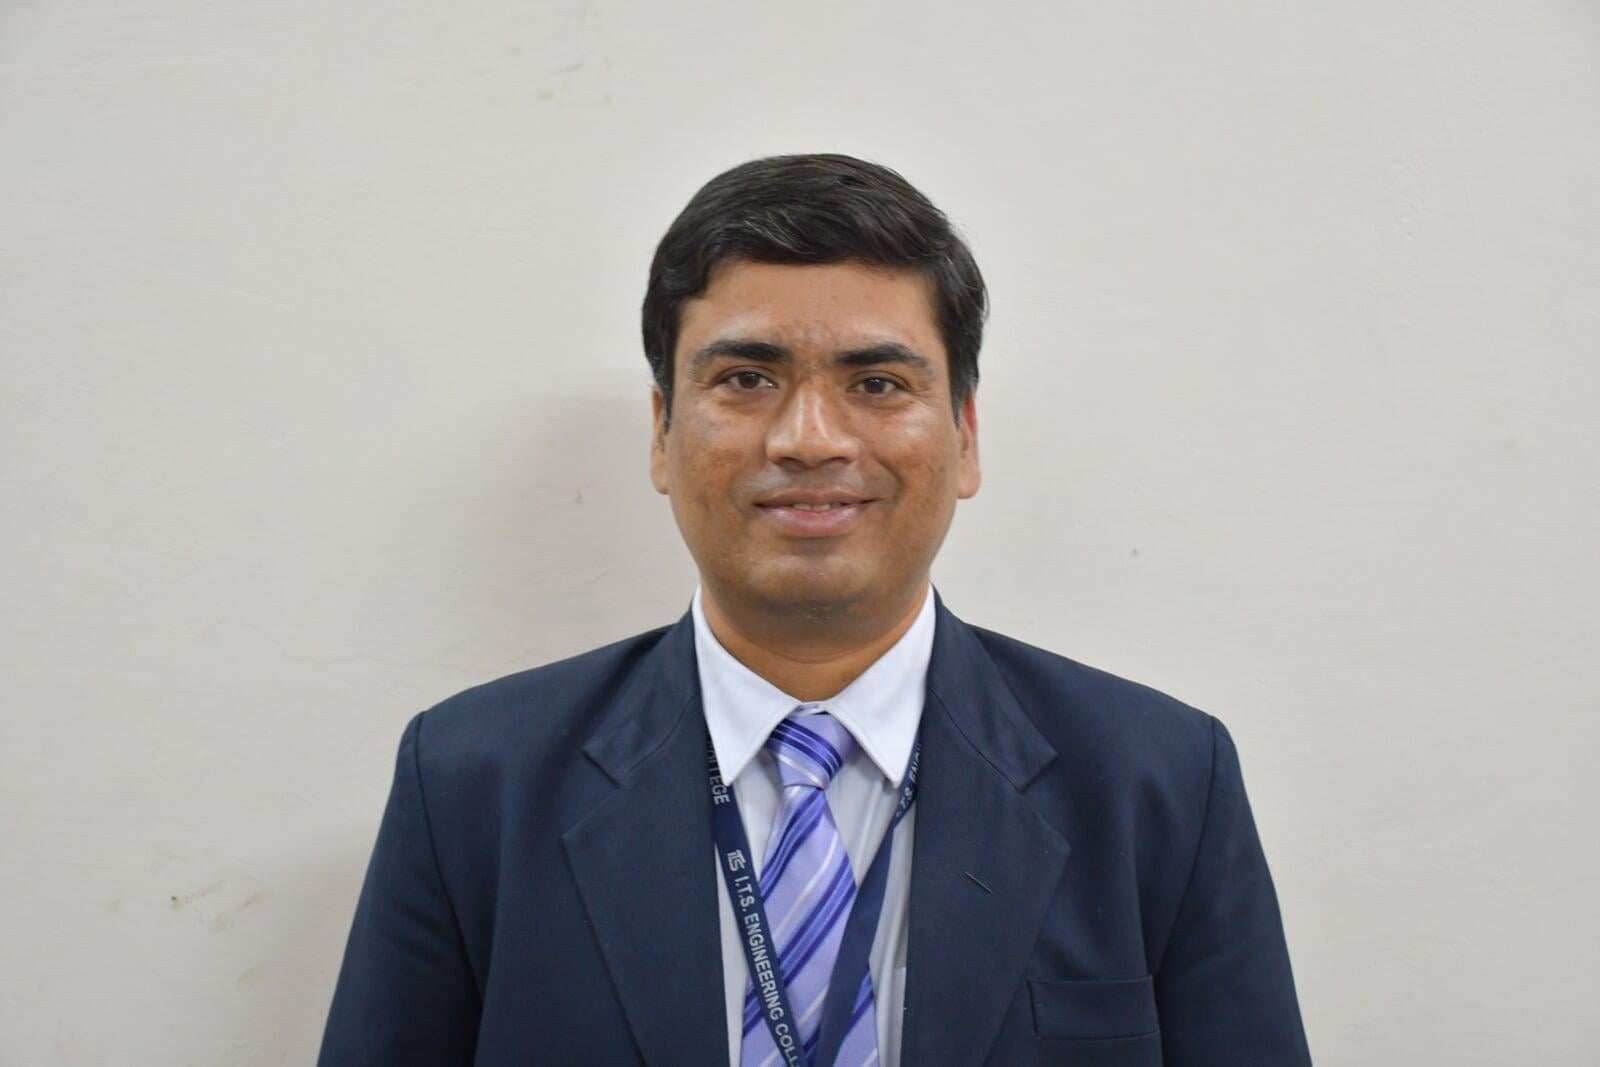 Mr. Praveen Bhola B.Tech ECE Faculty at ITS